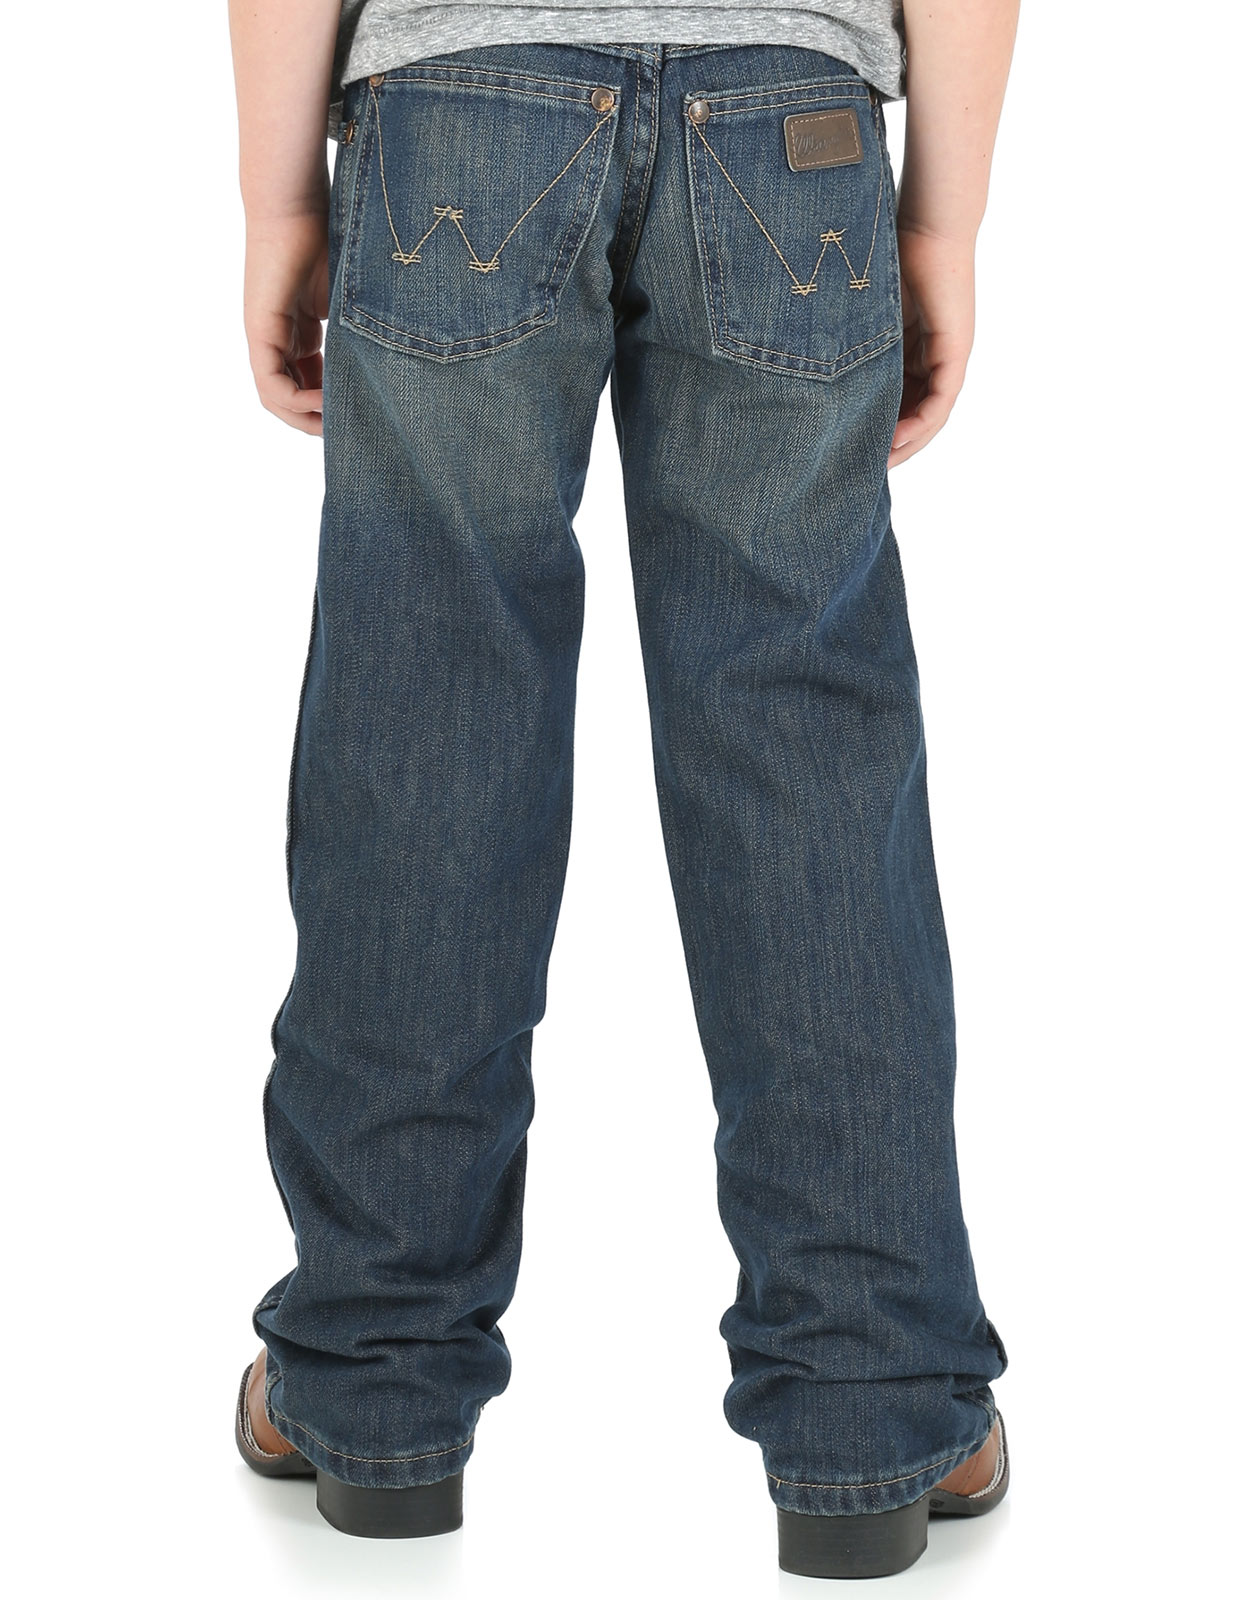 Wrangler Boy's Retro Low Rise Relaxed Fit Boot Cut Jeans (Sizes 1T-7) - Night Sky